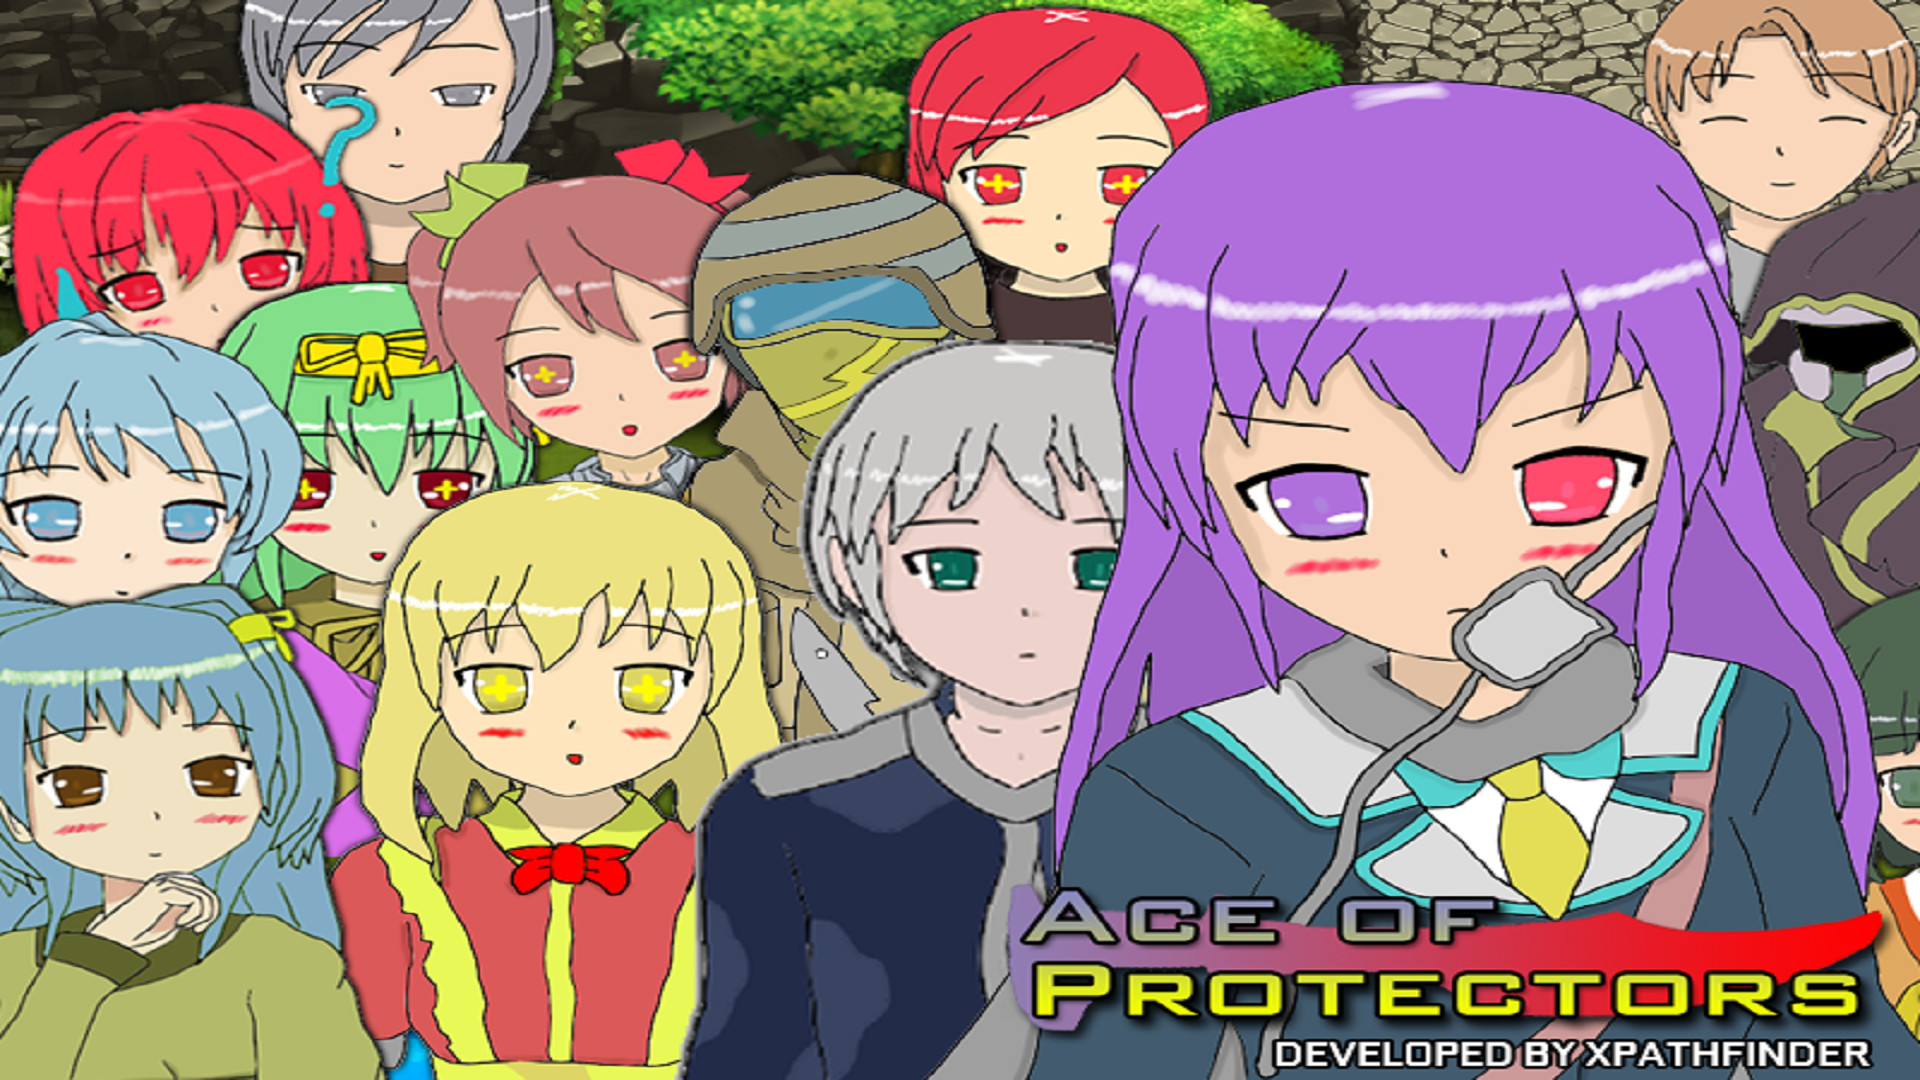 Ace of Protectors